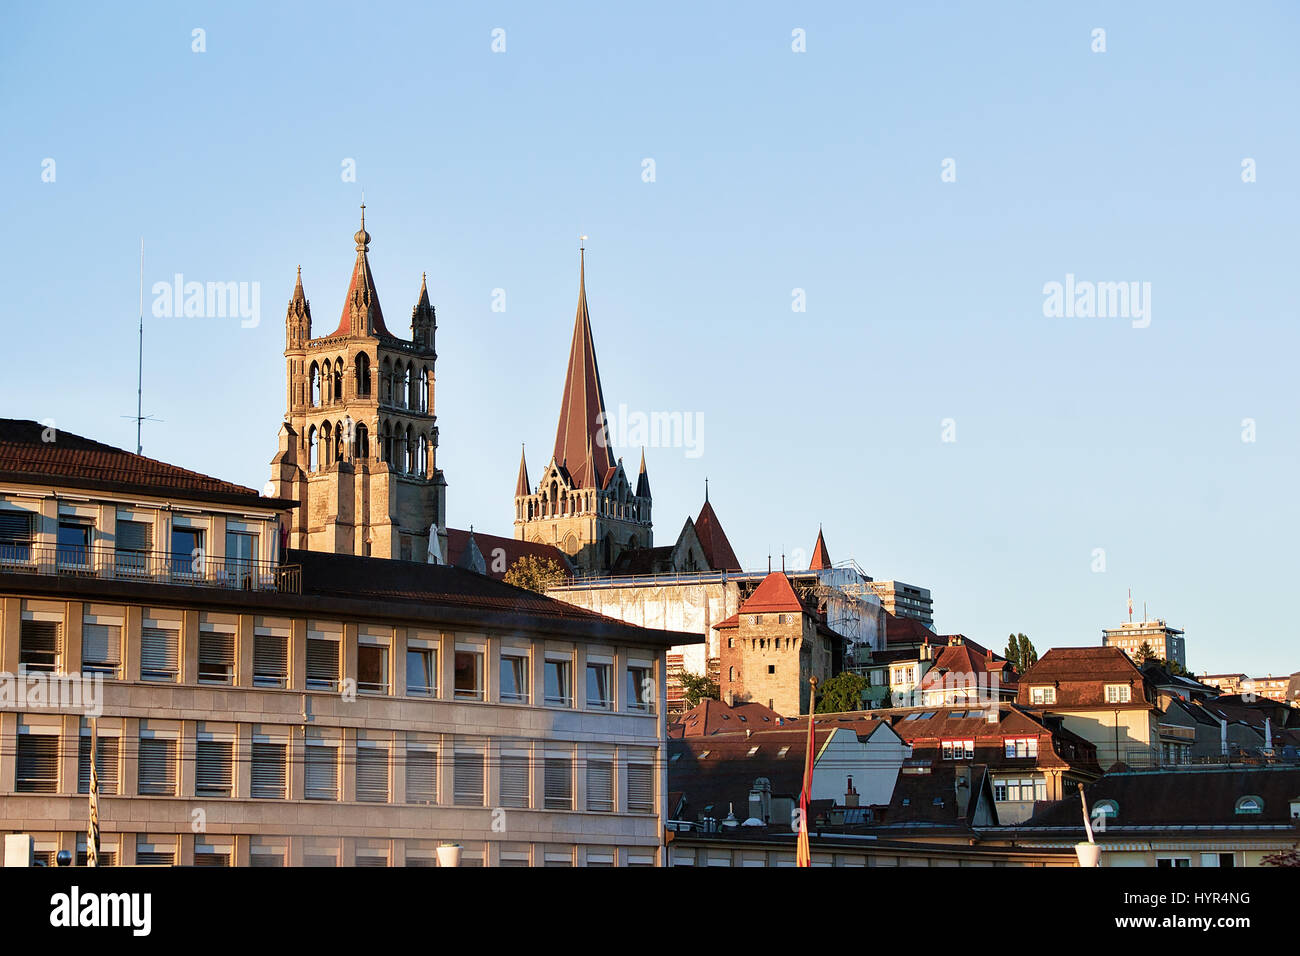 Lausanne Cathedral of Notre Dame in Lausanne city center, Switzerland. Seen from Le Flon district - Stock Image